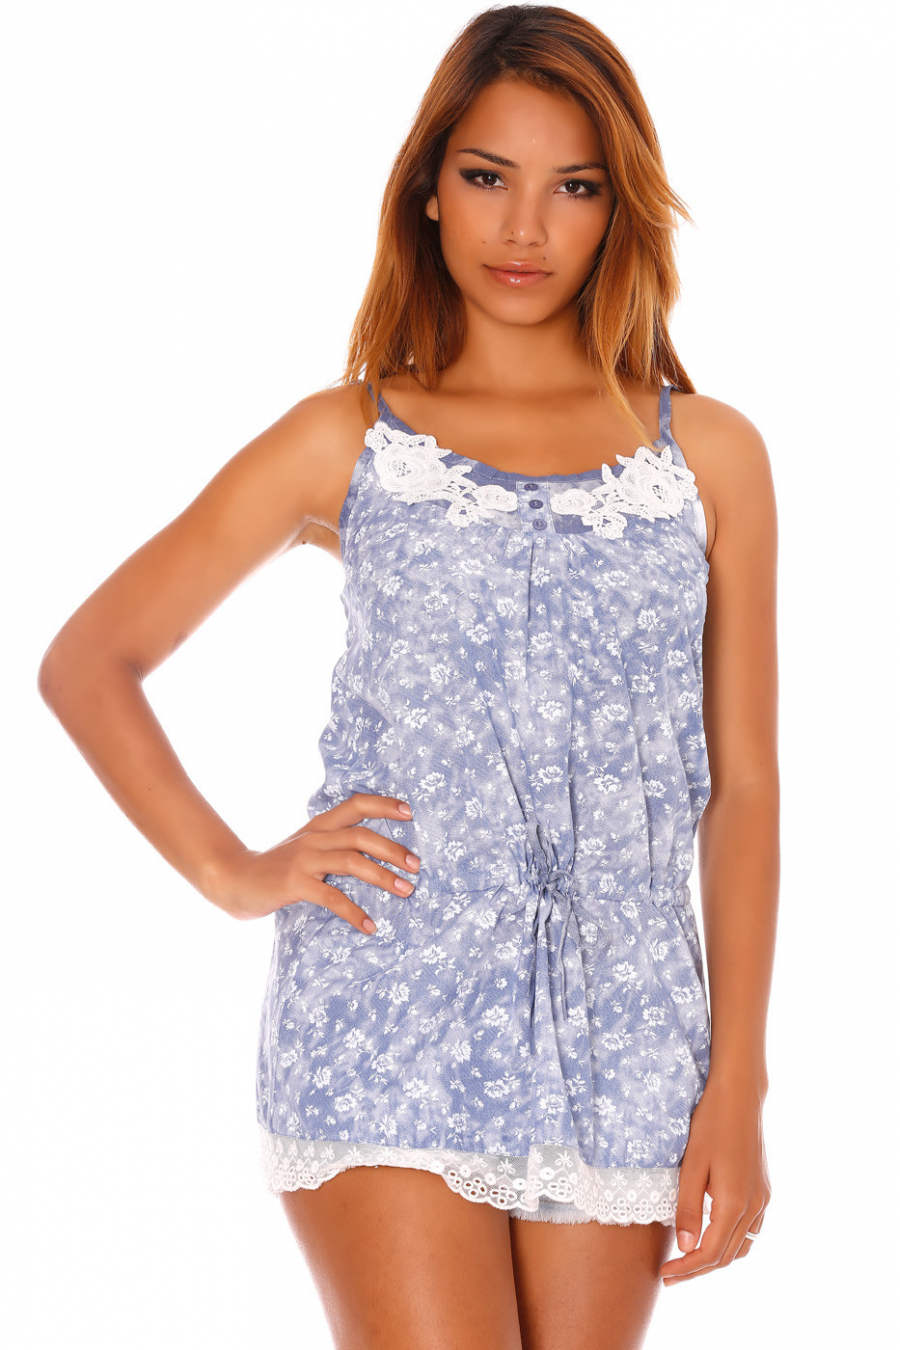 Blue suspender top with lace and flower pattern - P0030